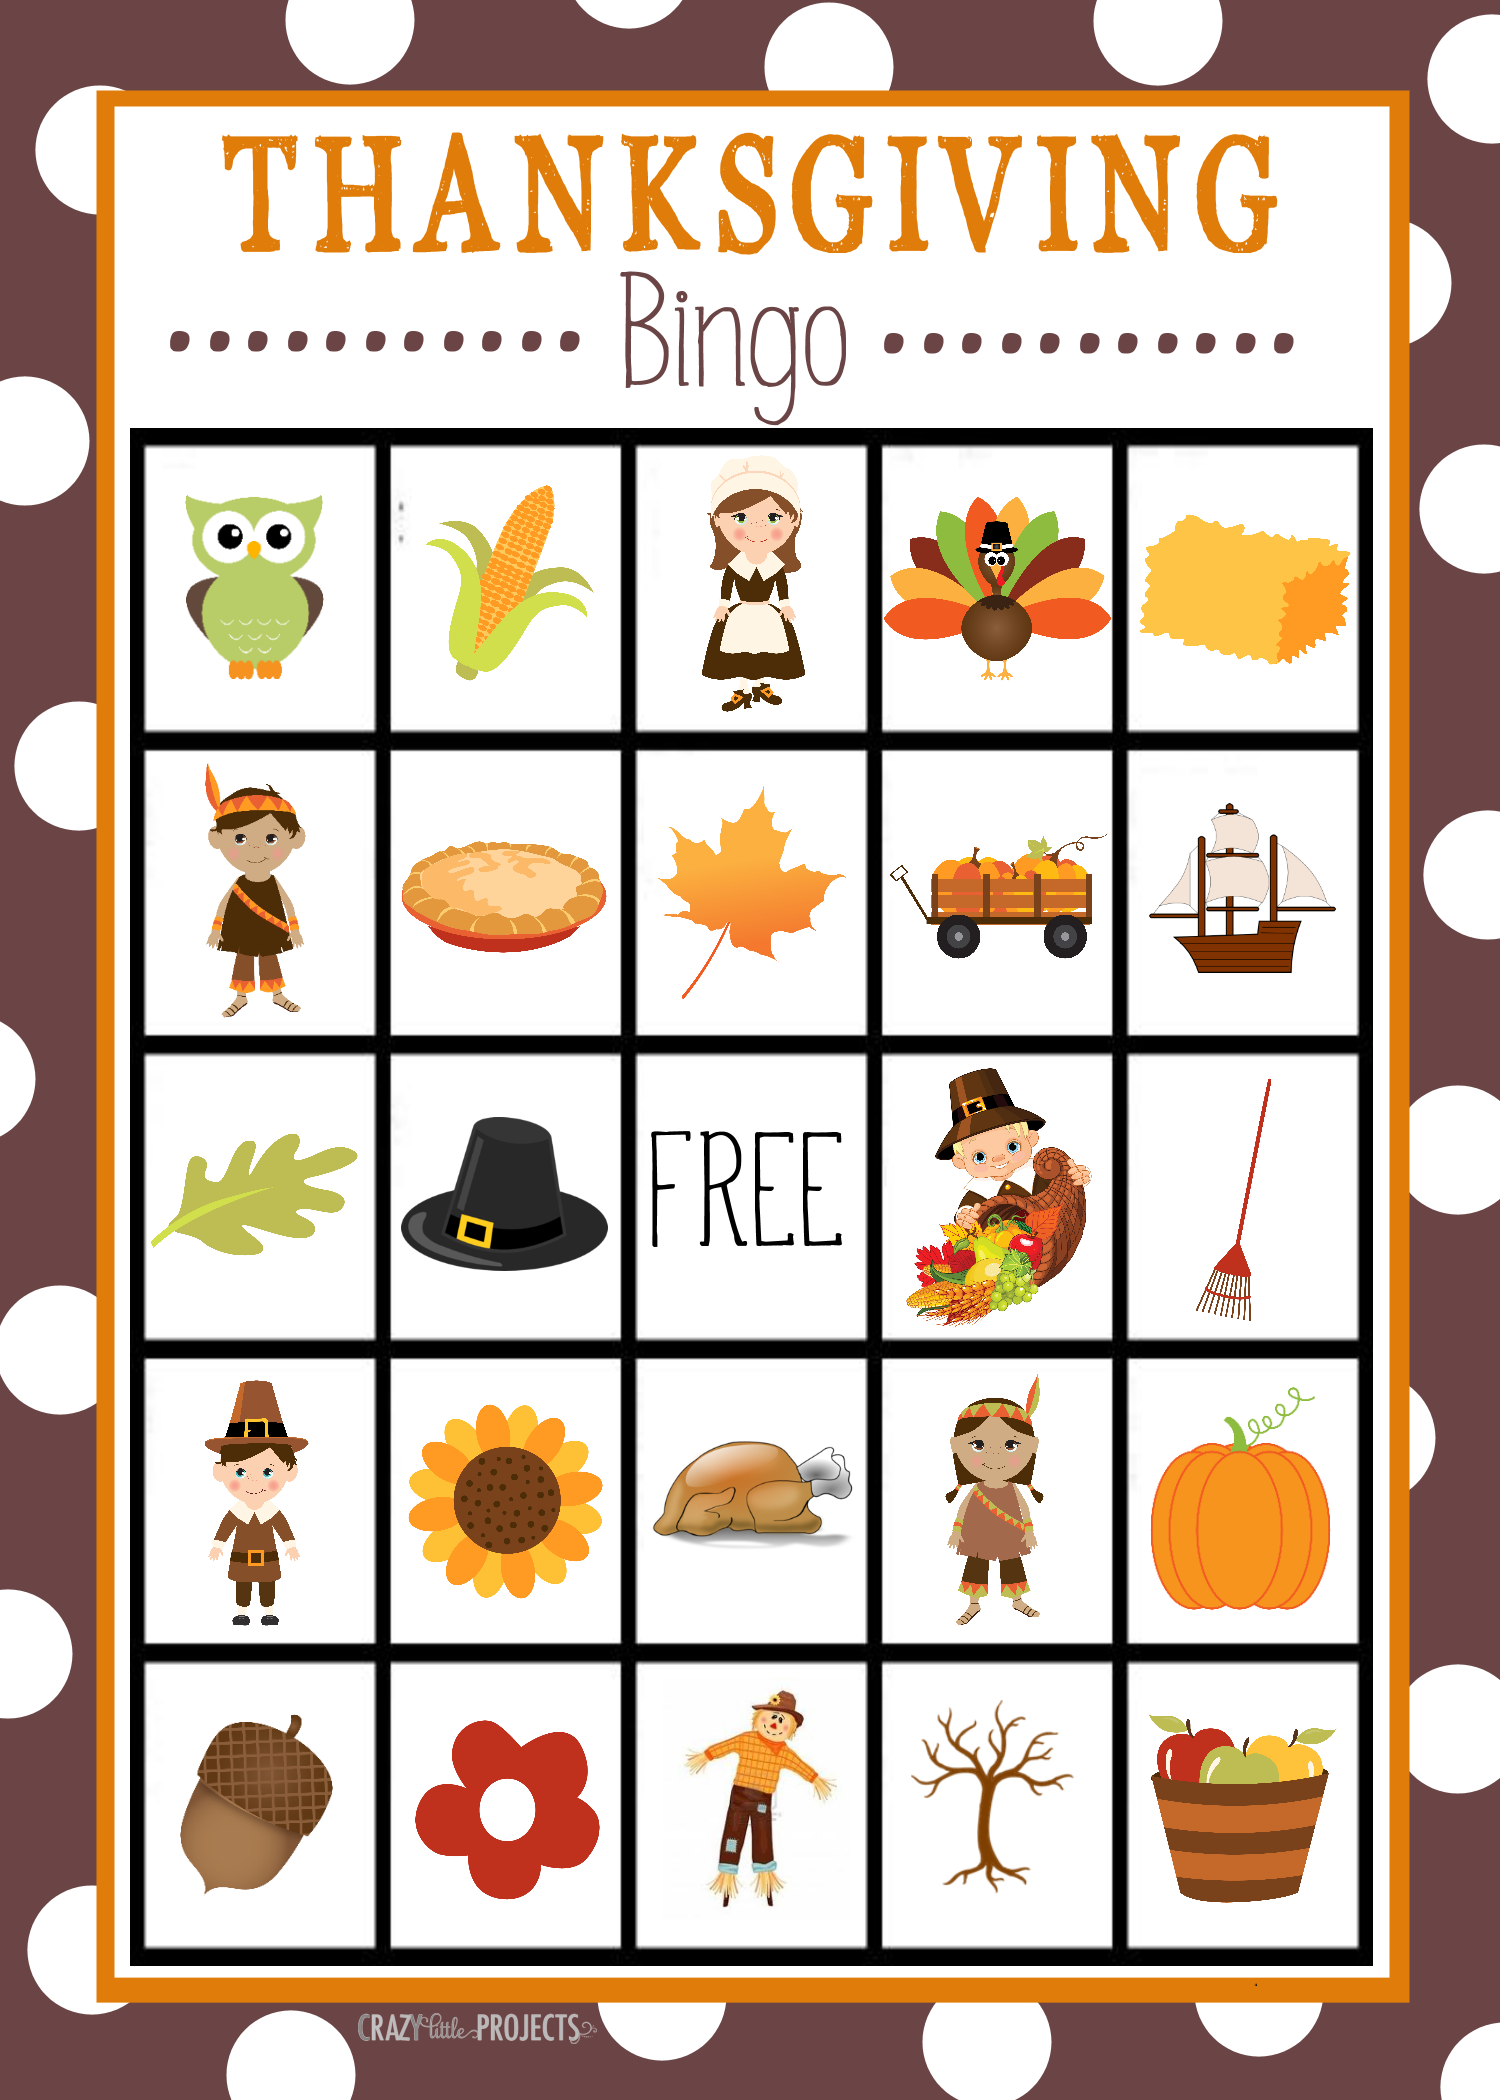 7 Images of Turkey Bingo Printable